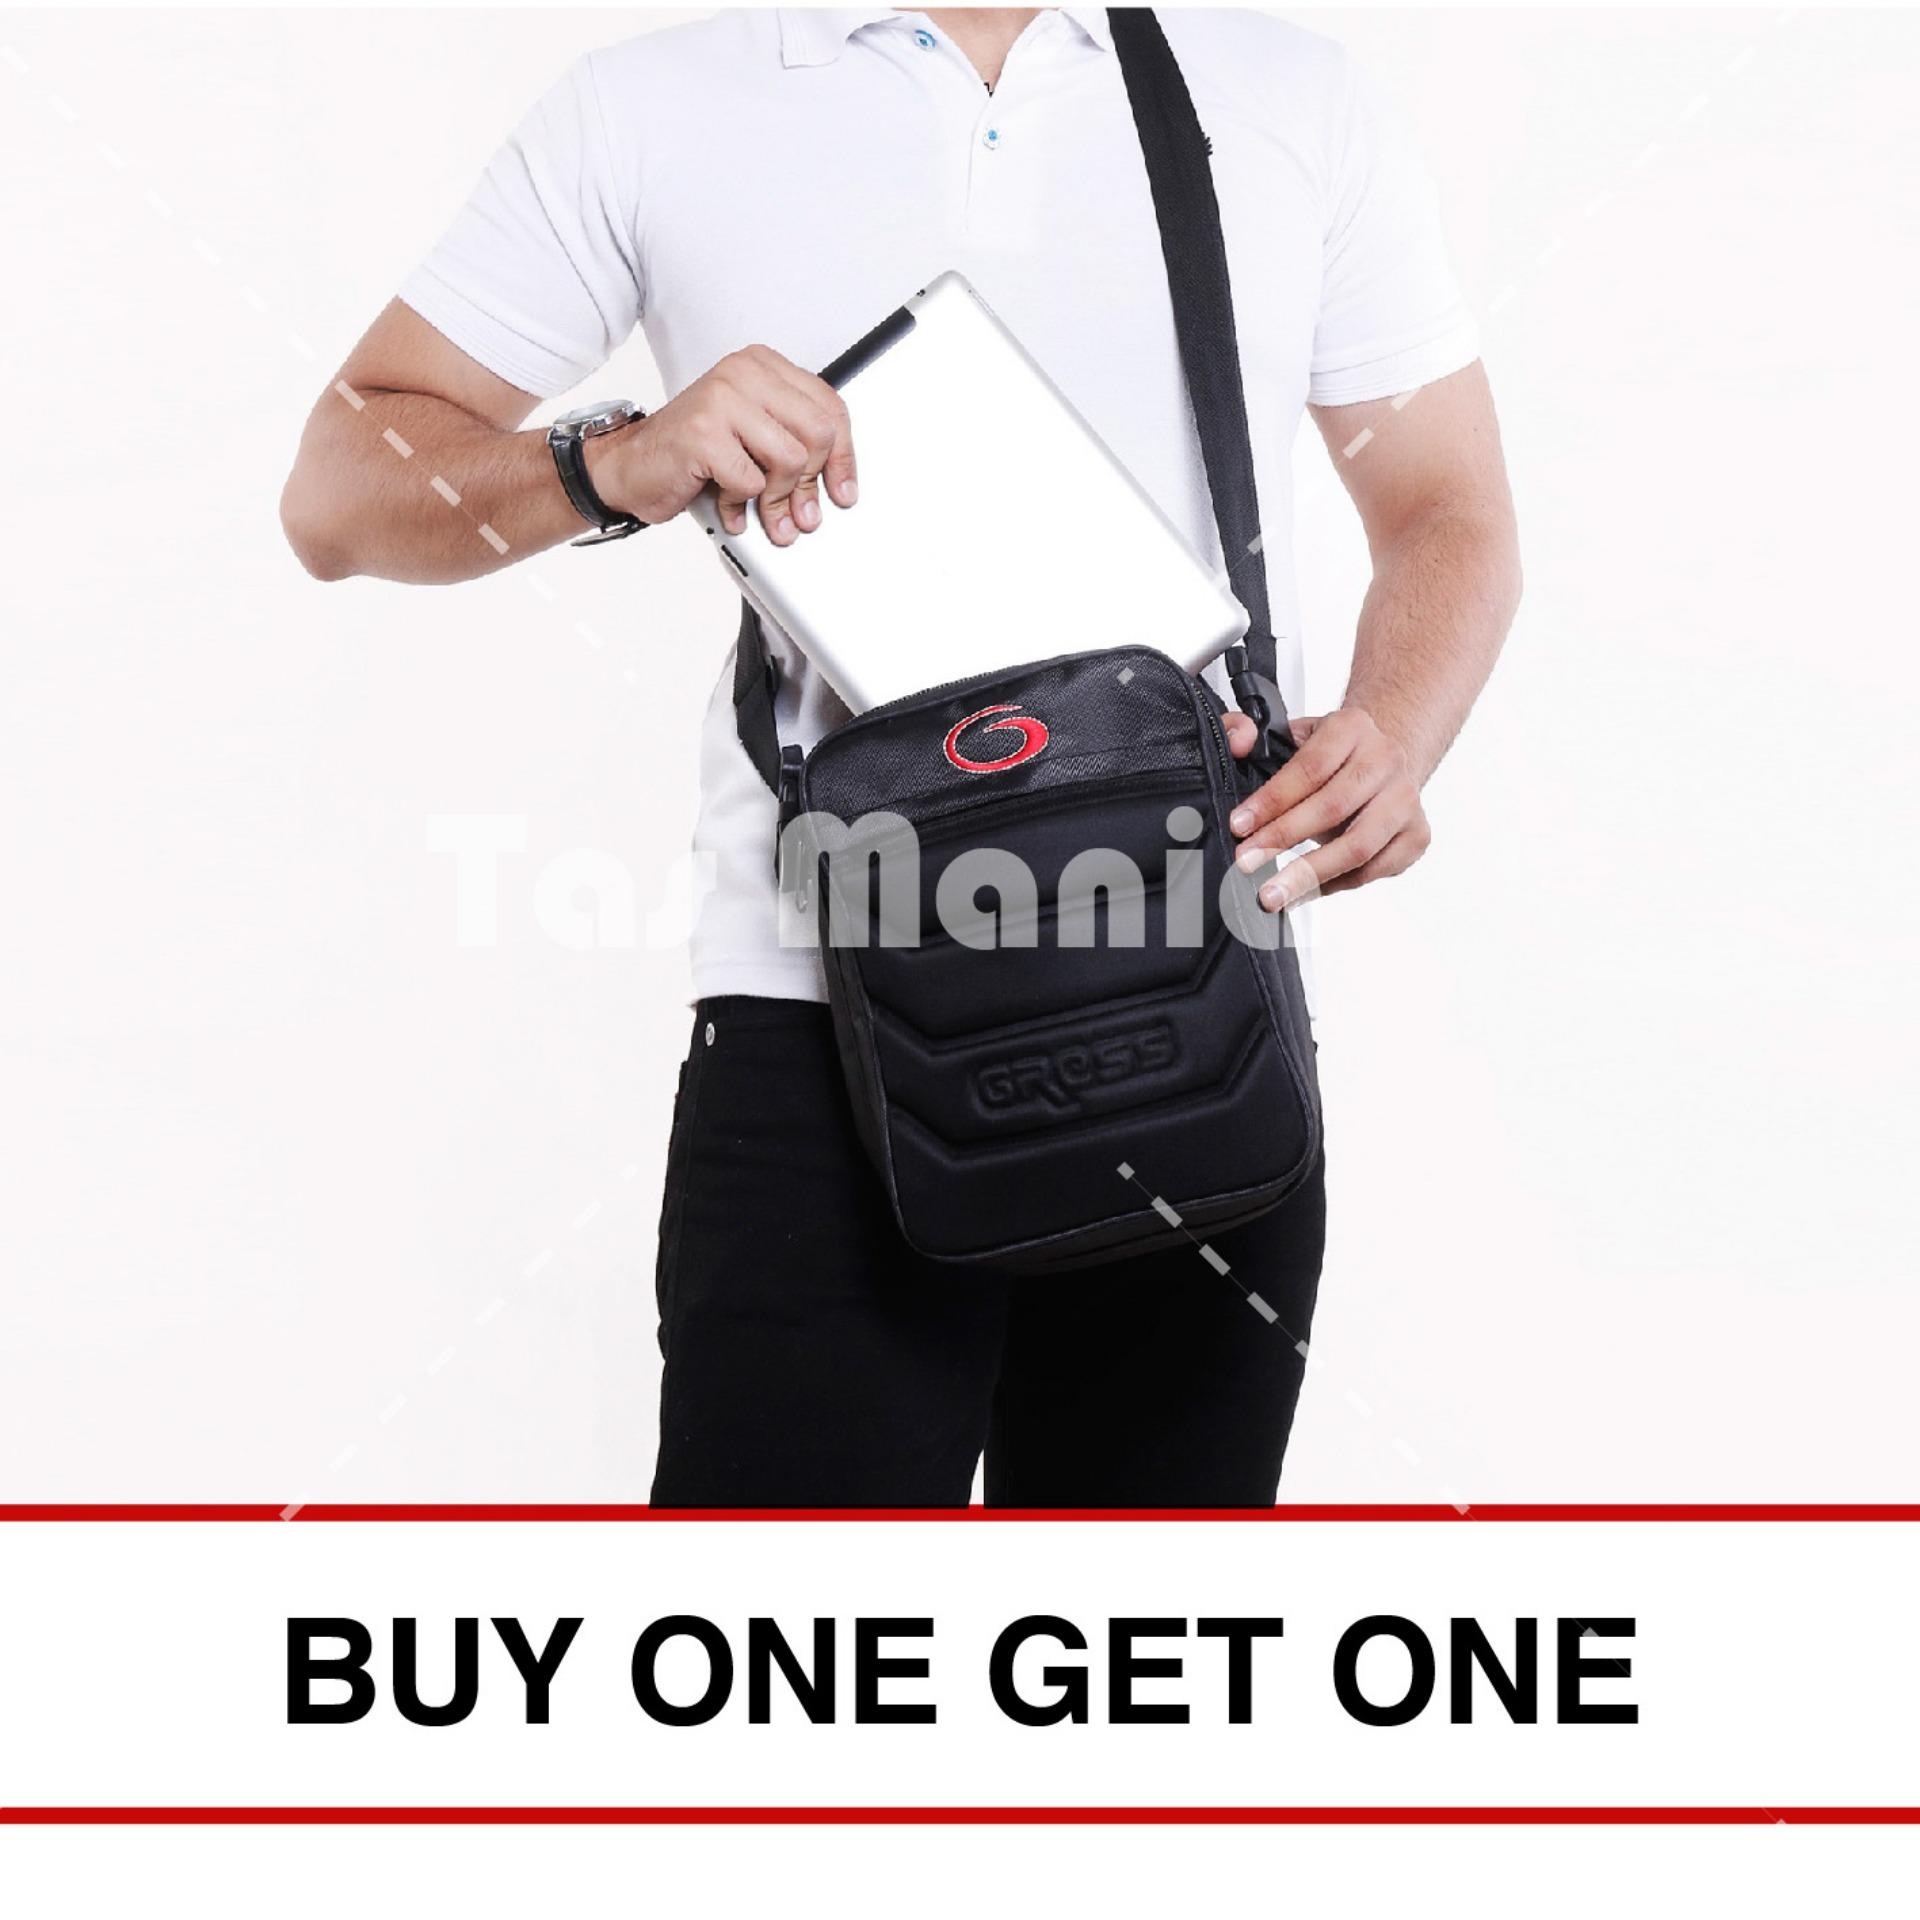 Gress Skywalkgress Tas Selempang Pria - Black - Buy Get One 88